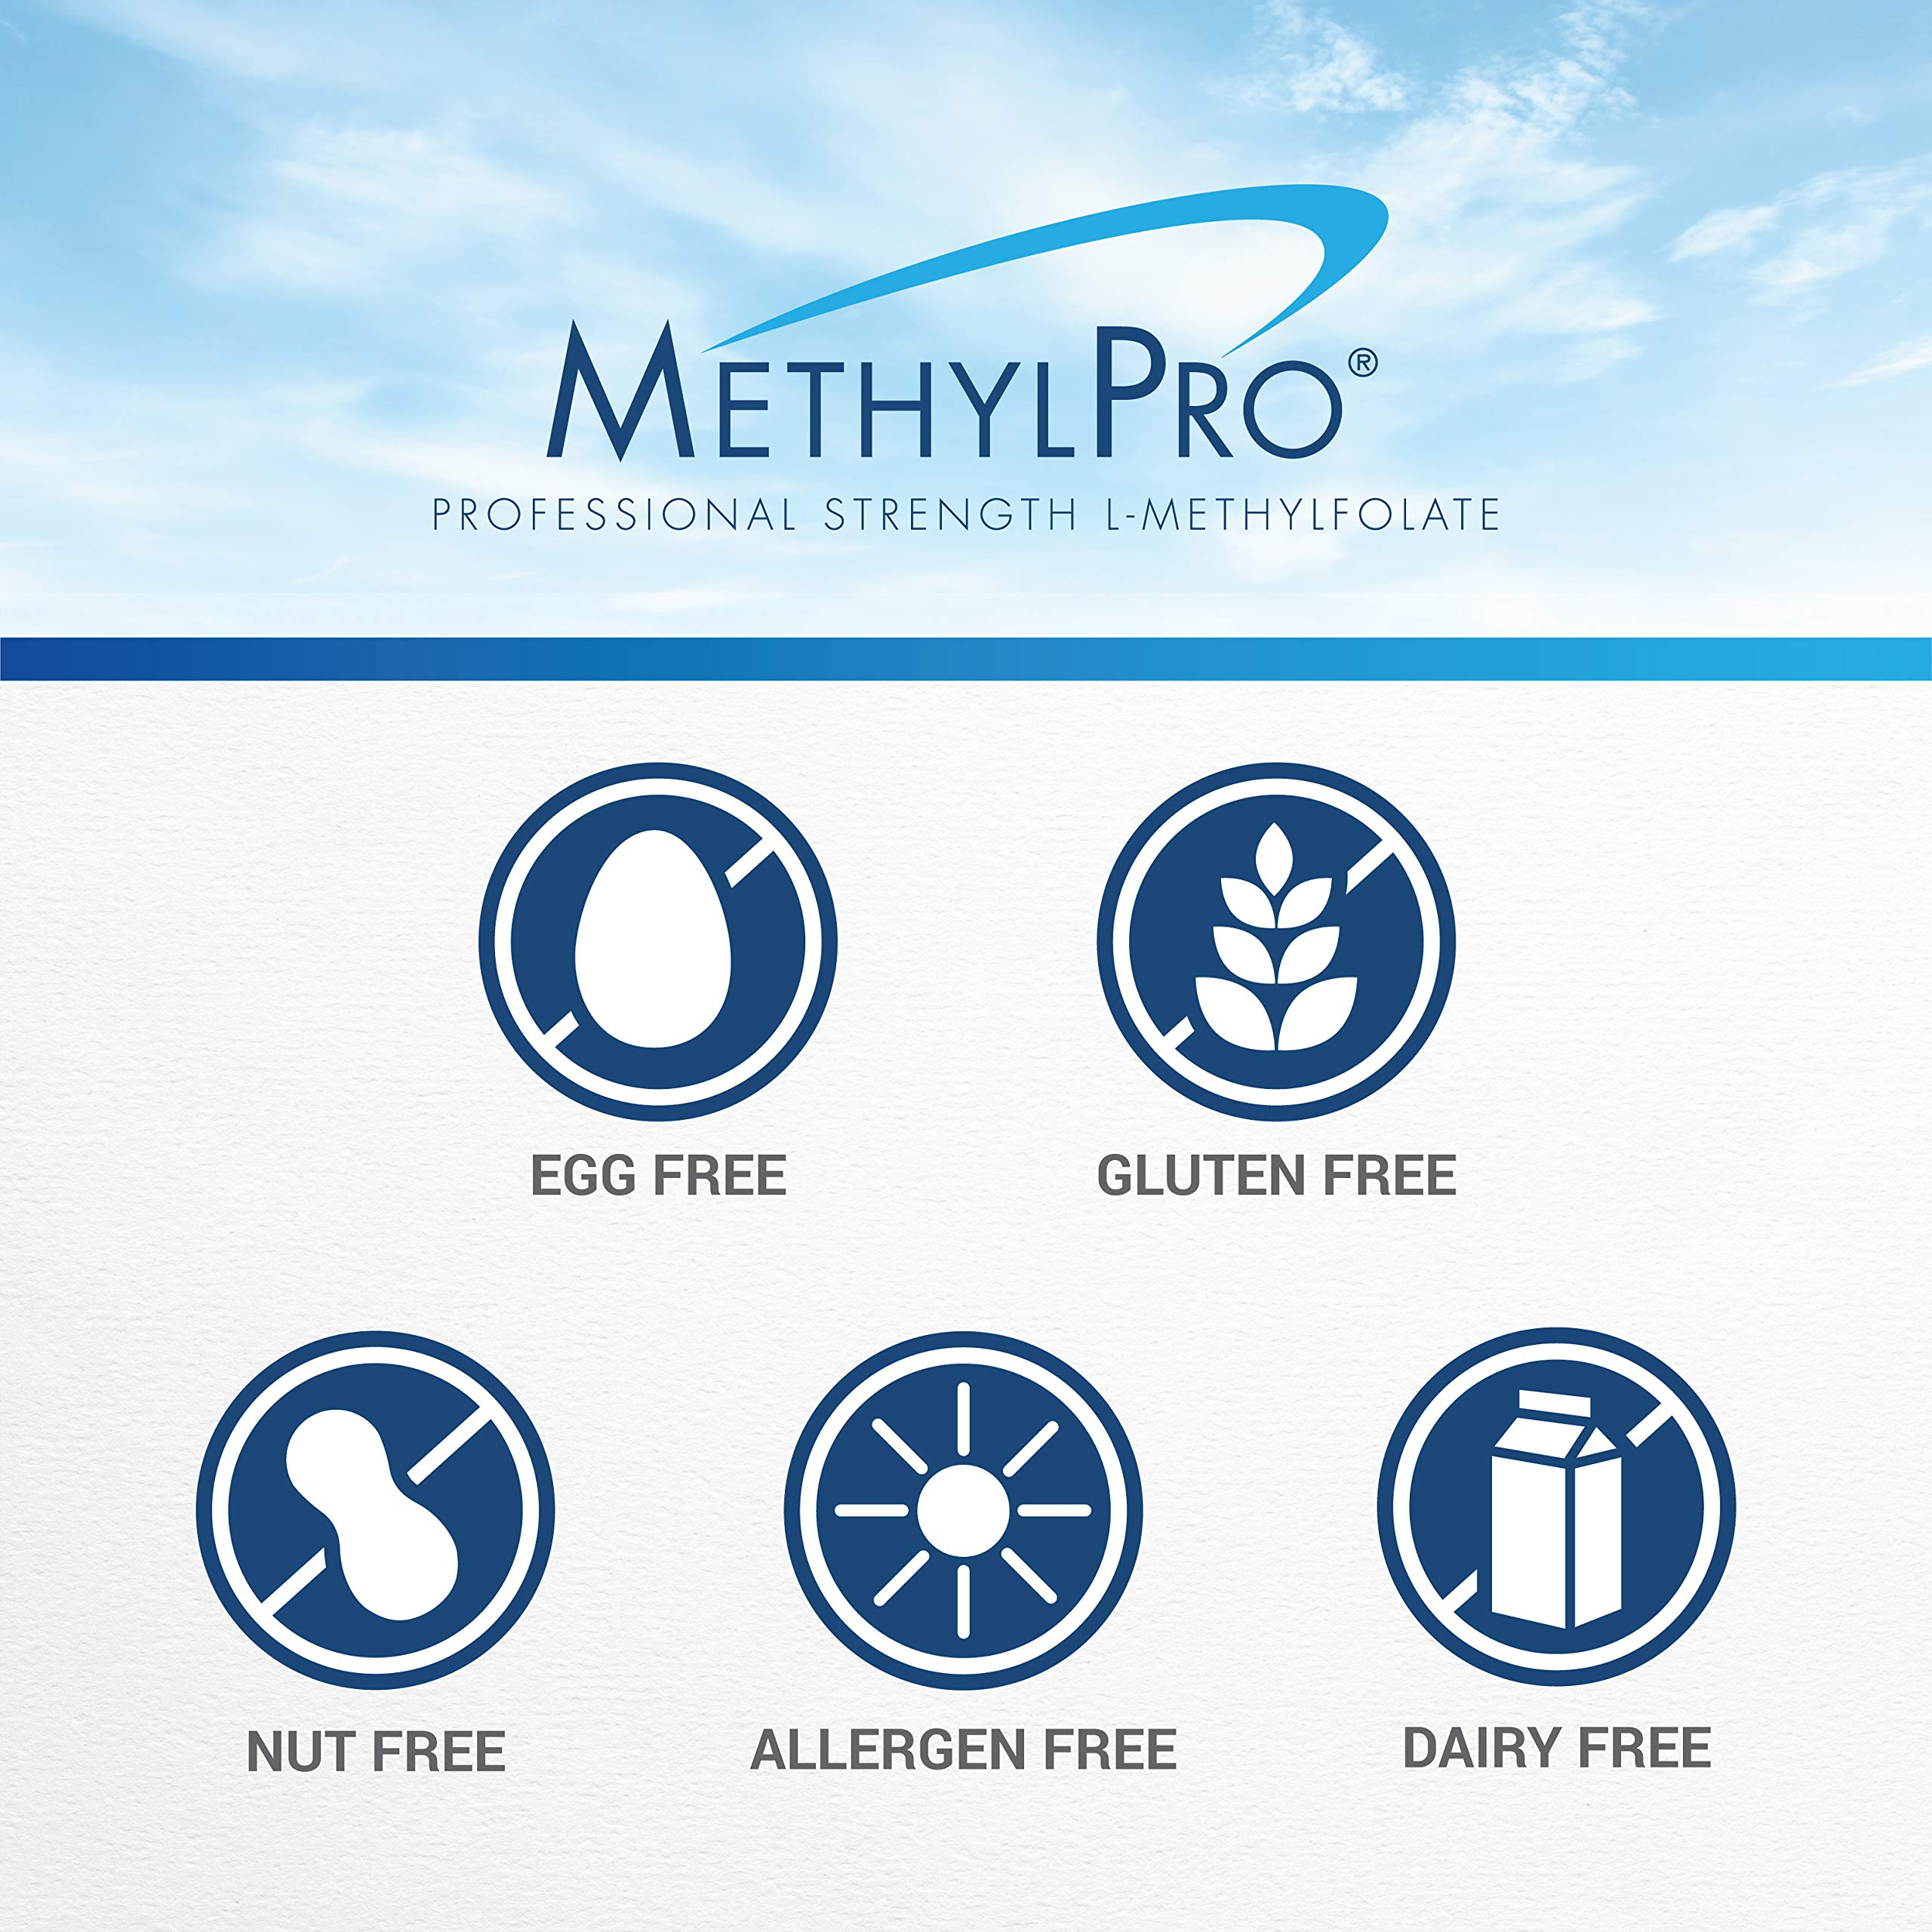 MethylPro L-Methylfolate 15 mg - 30 Capsules, 15000 mcg Professional Strength Active Folate by methylpro (Image #7)